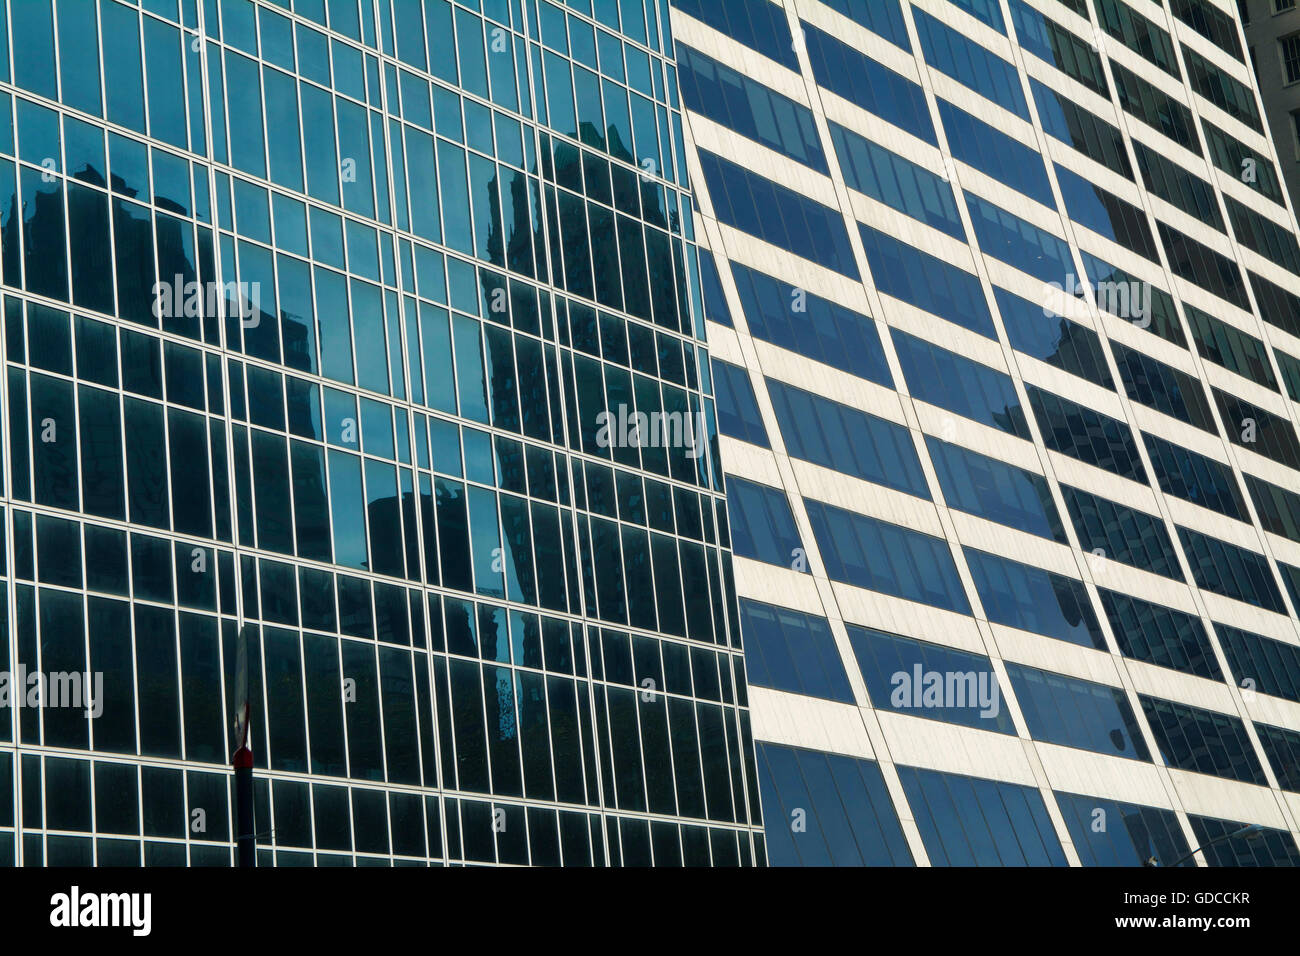 Blue skyscraper office buildings located in downtown New York City reflecting images of adjacent skyscrapers Stock Photo